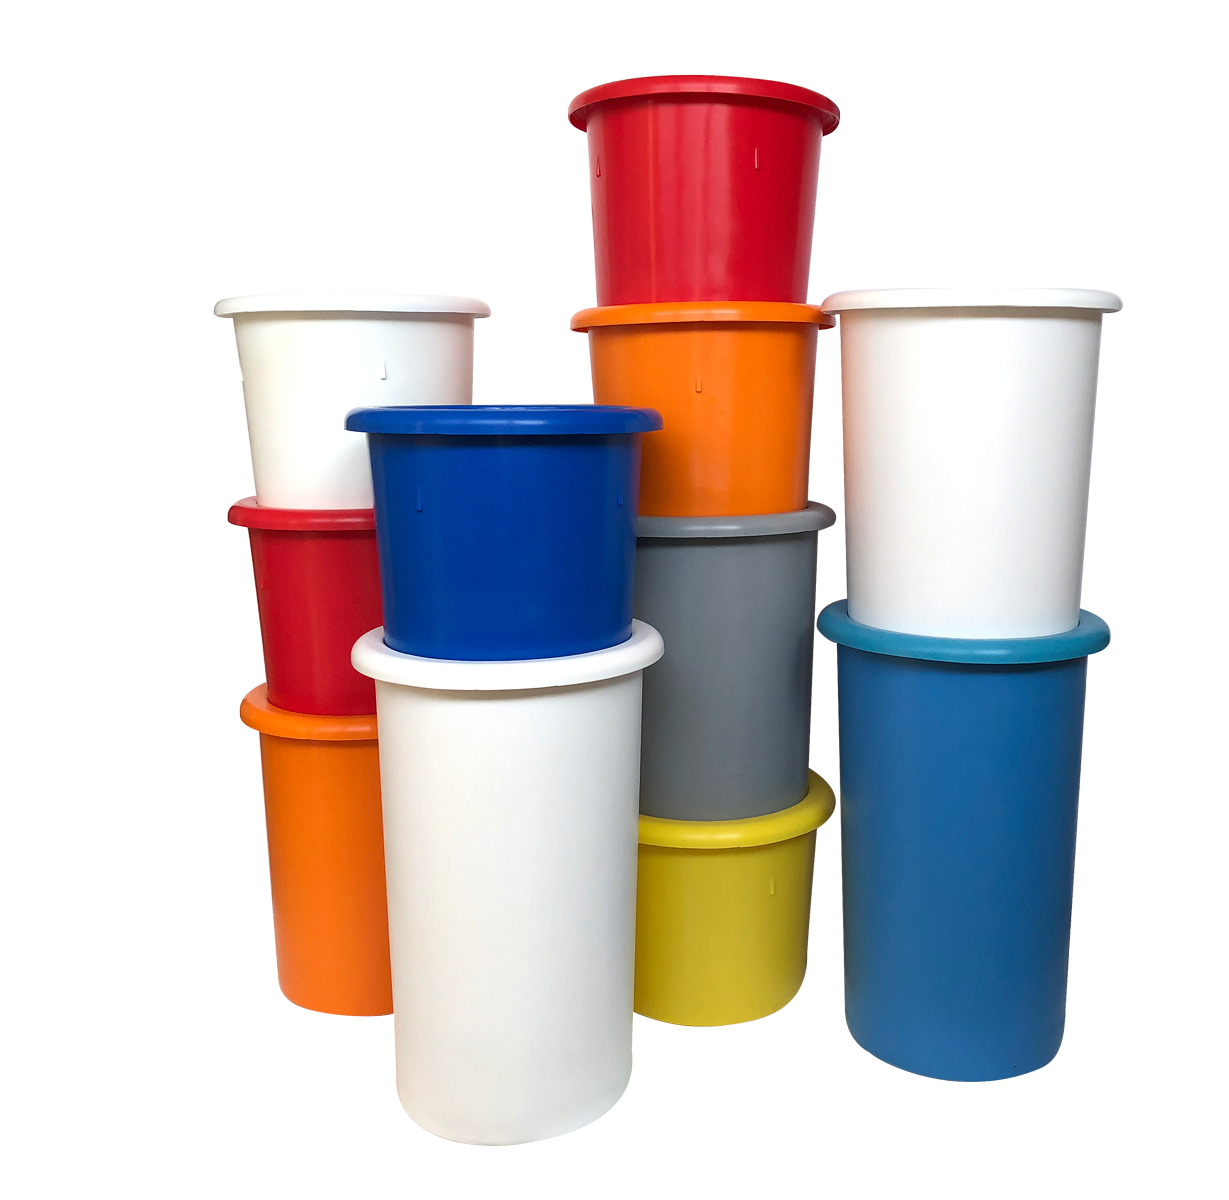 Colour coded interstacking bins